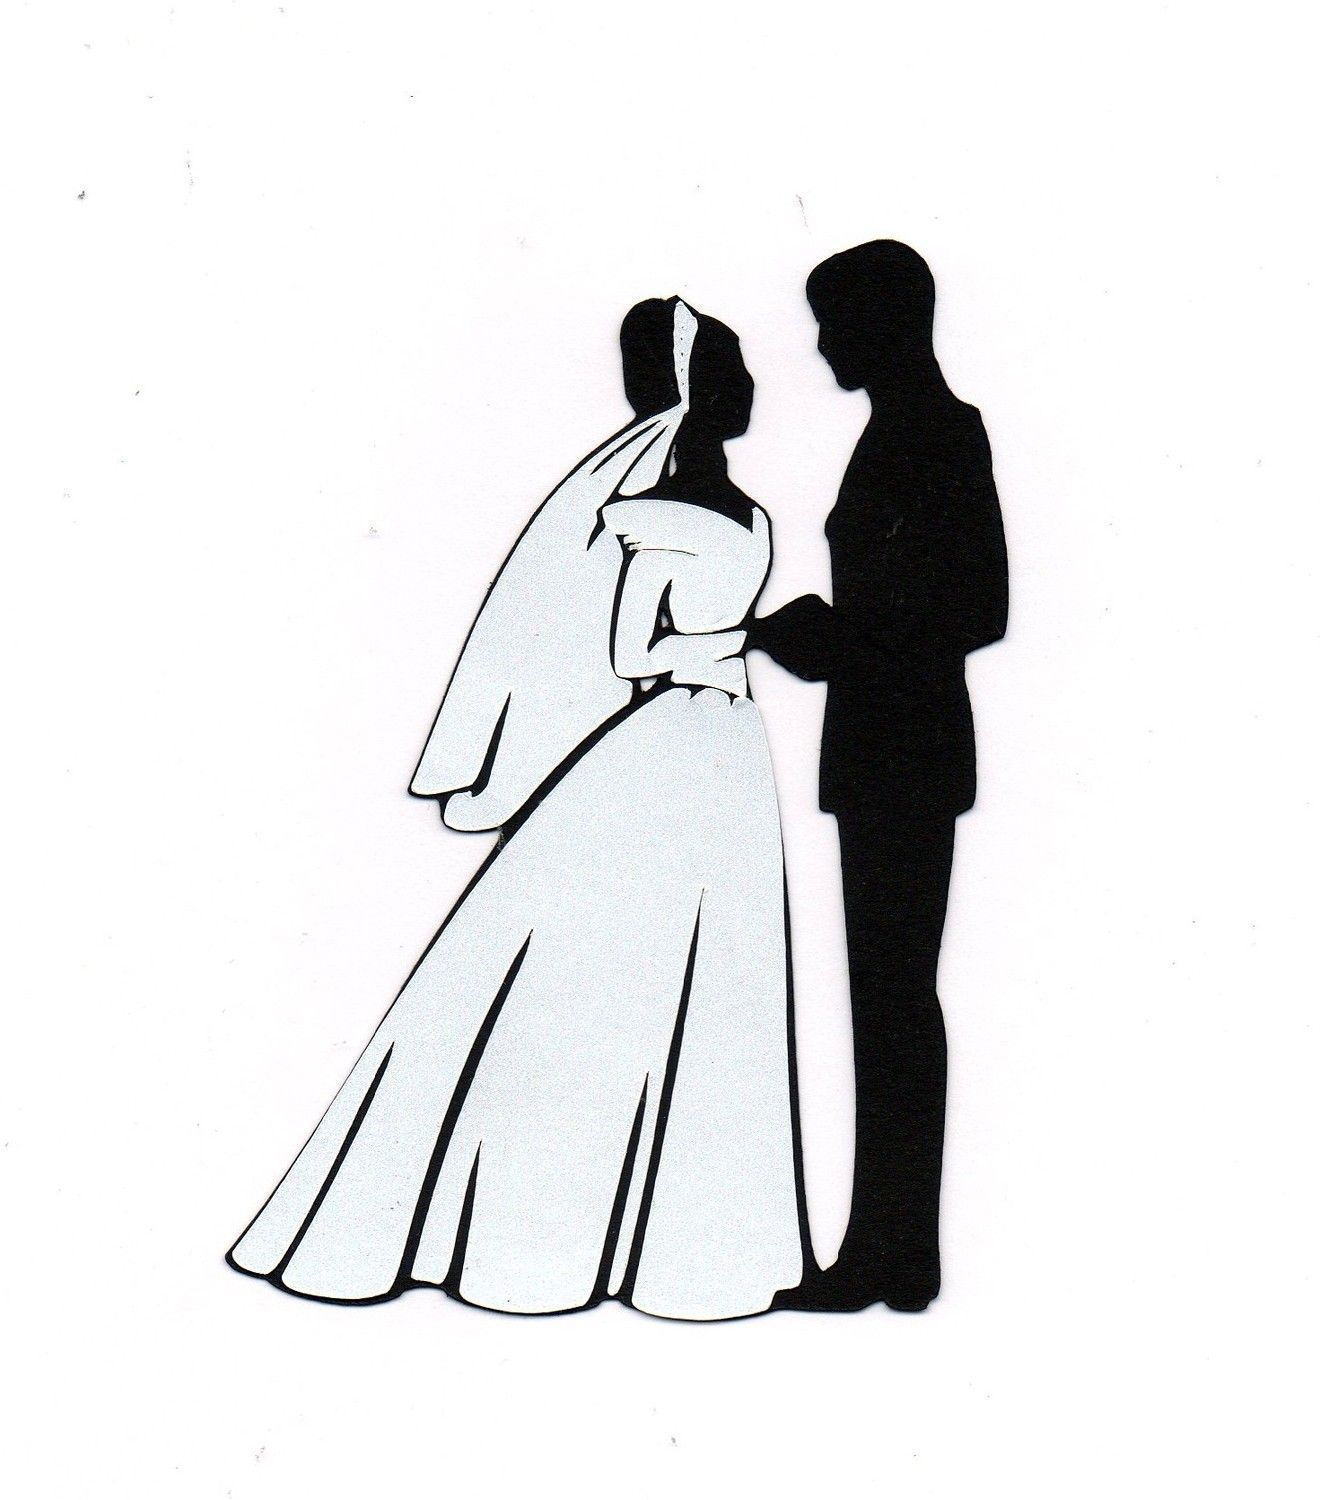 bride groom silhouette clip art at getdrawings com free for rh getdrawings com bride and groom picture clipart indian bride and groom cartoon images